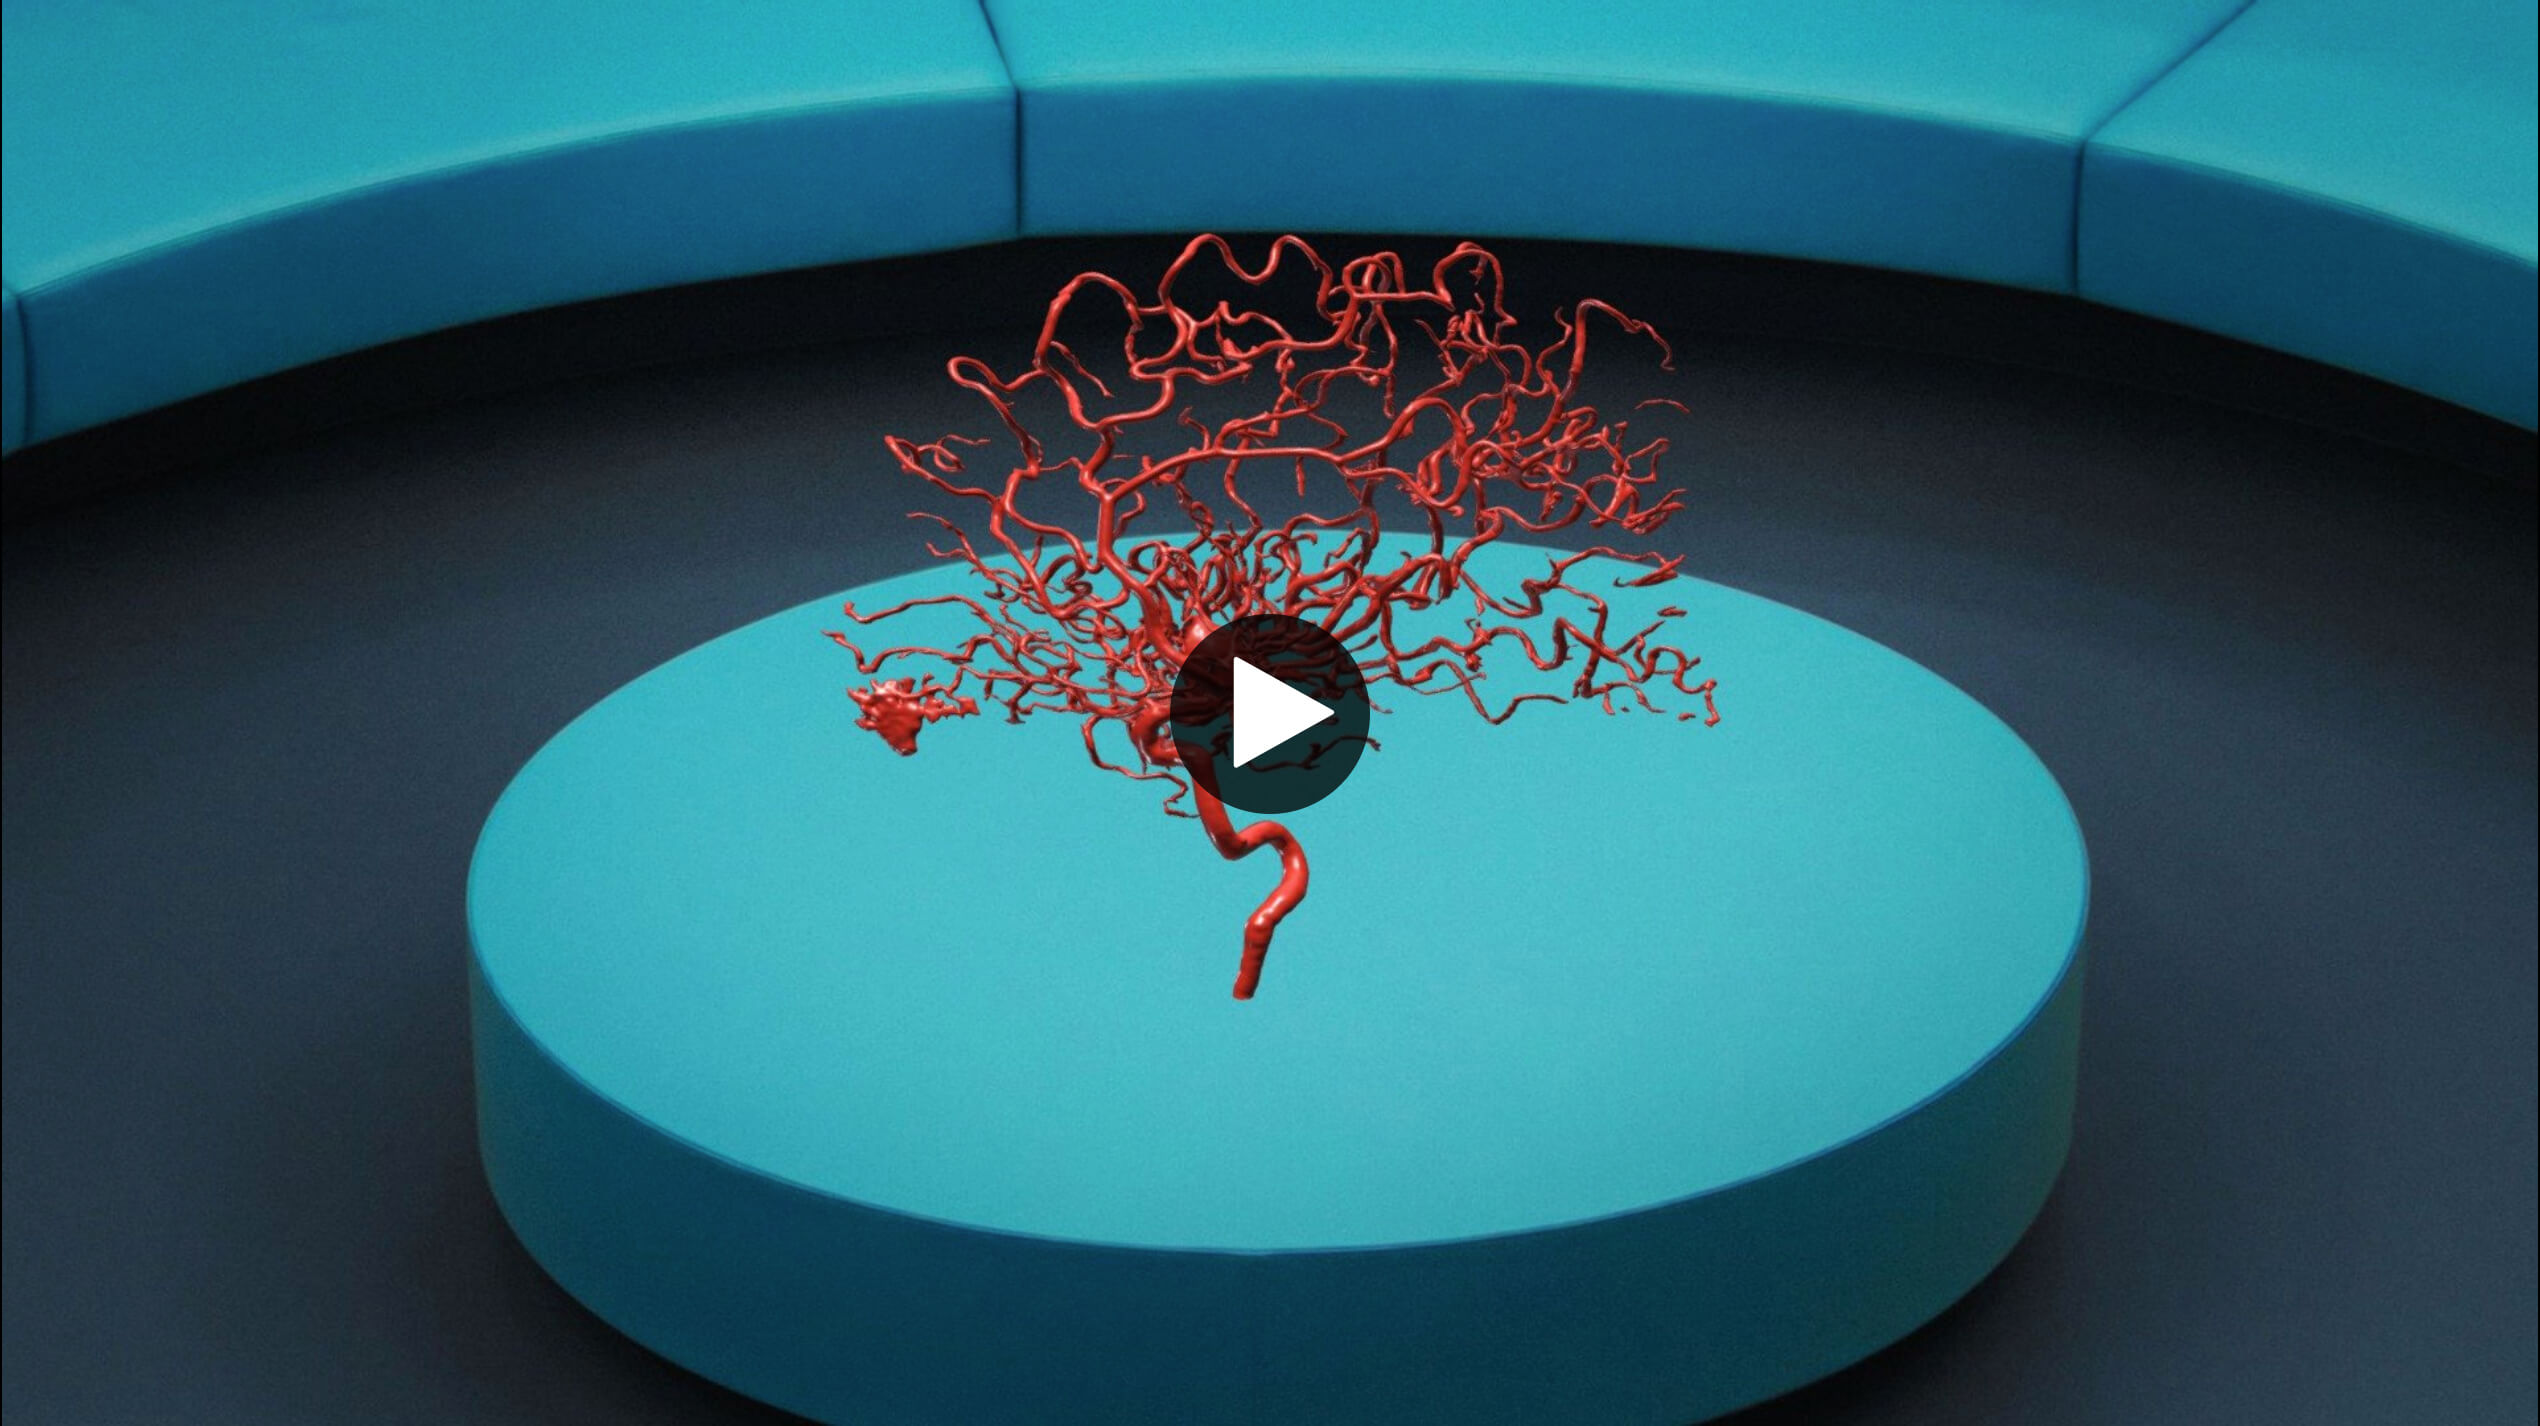 Mixed reality view of a brain aneurysm